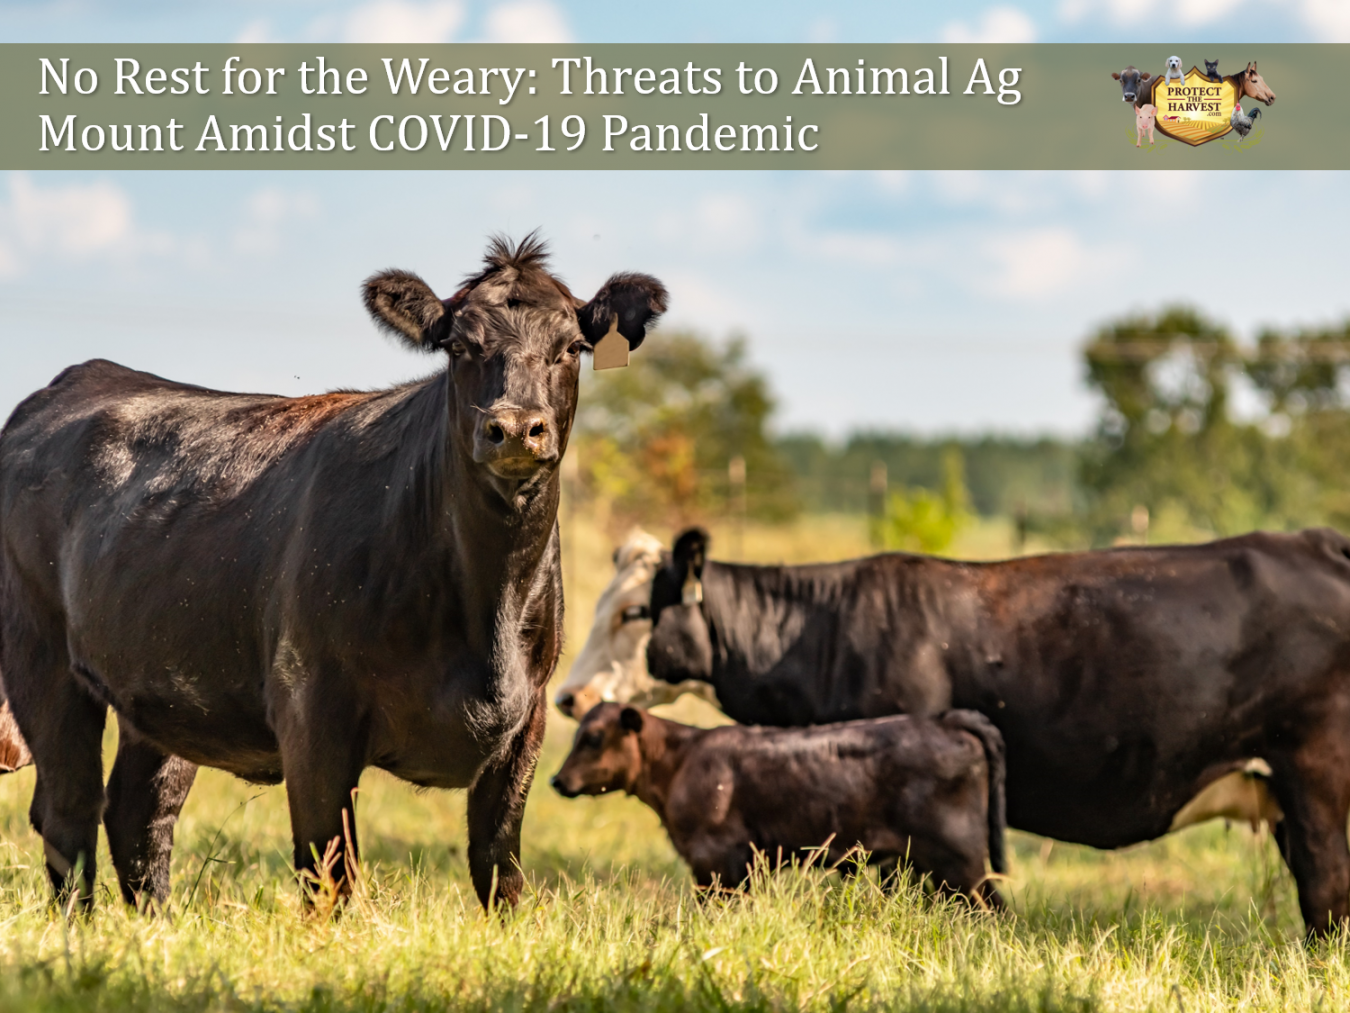 No Rest for the Weary: Threats to Animal Agriculture Mount Amidst COVID-19 Pandemic